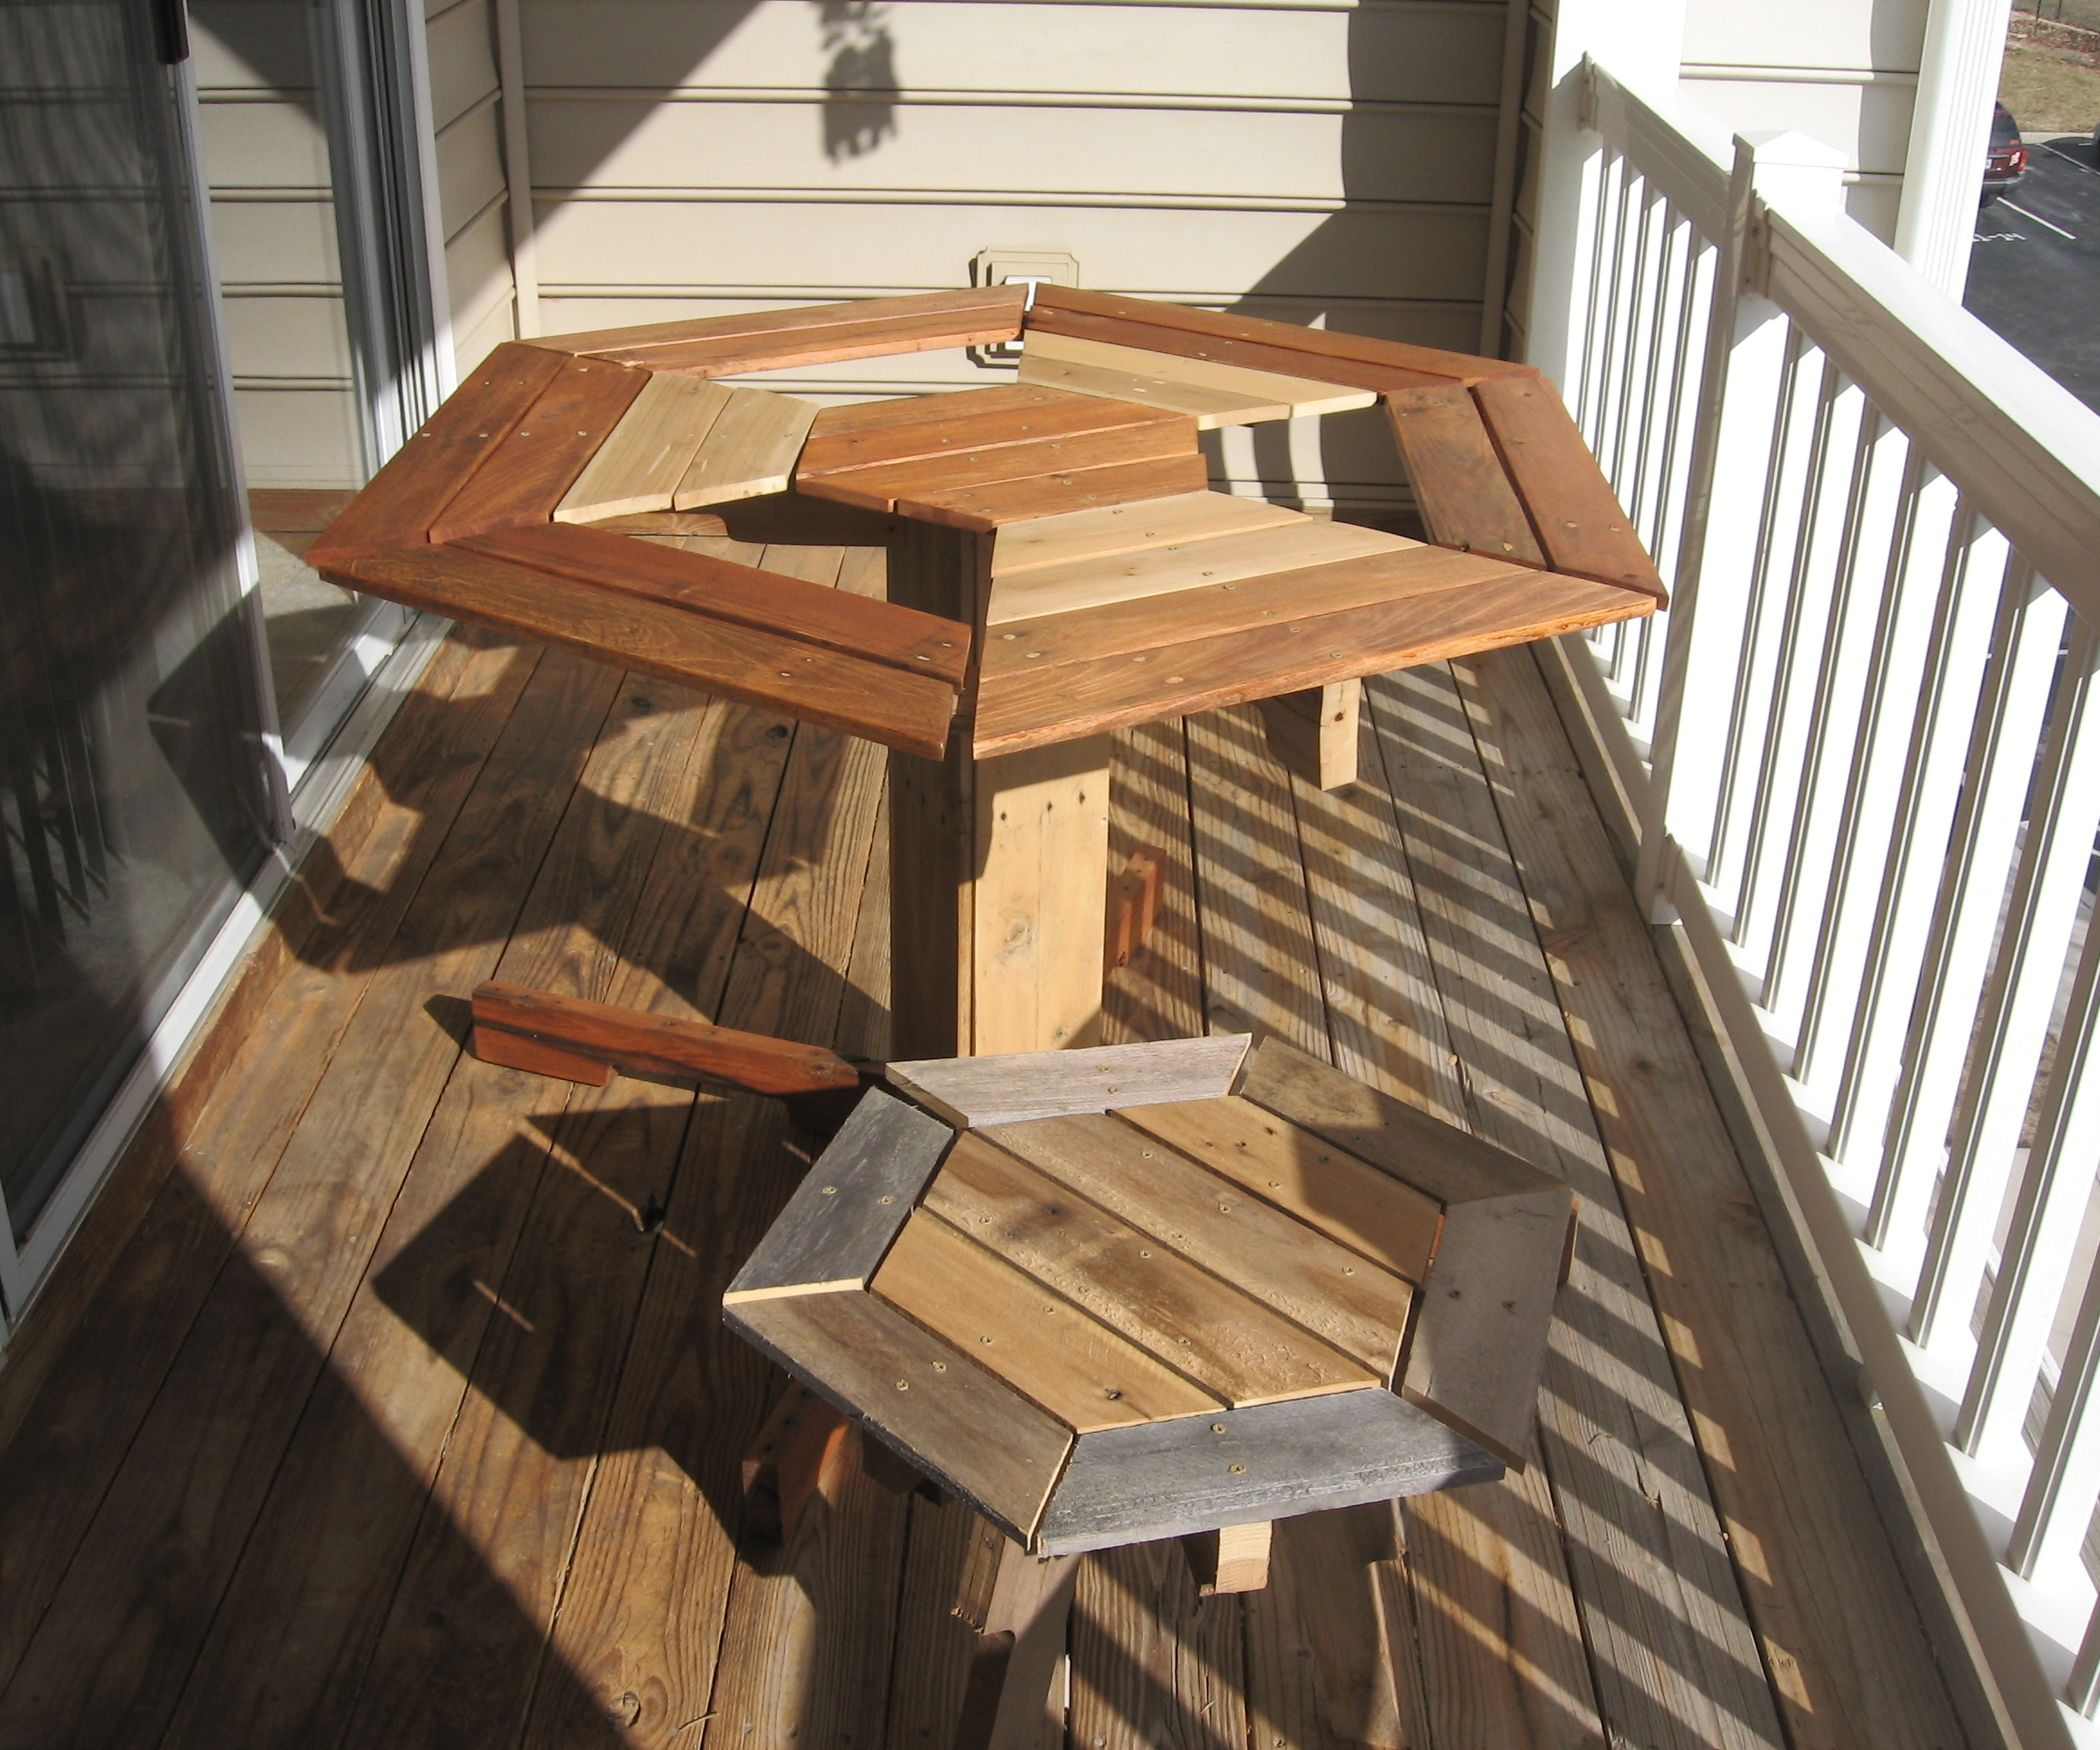 Diy Outdoor Furniture Made From Pallets tips for making your own outdoor furniture | pallet patio